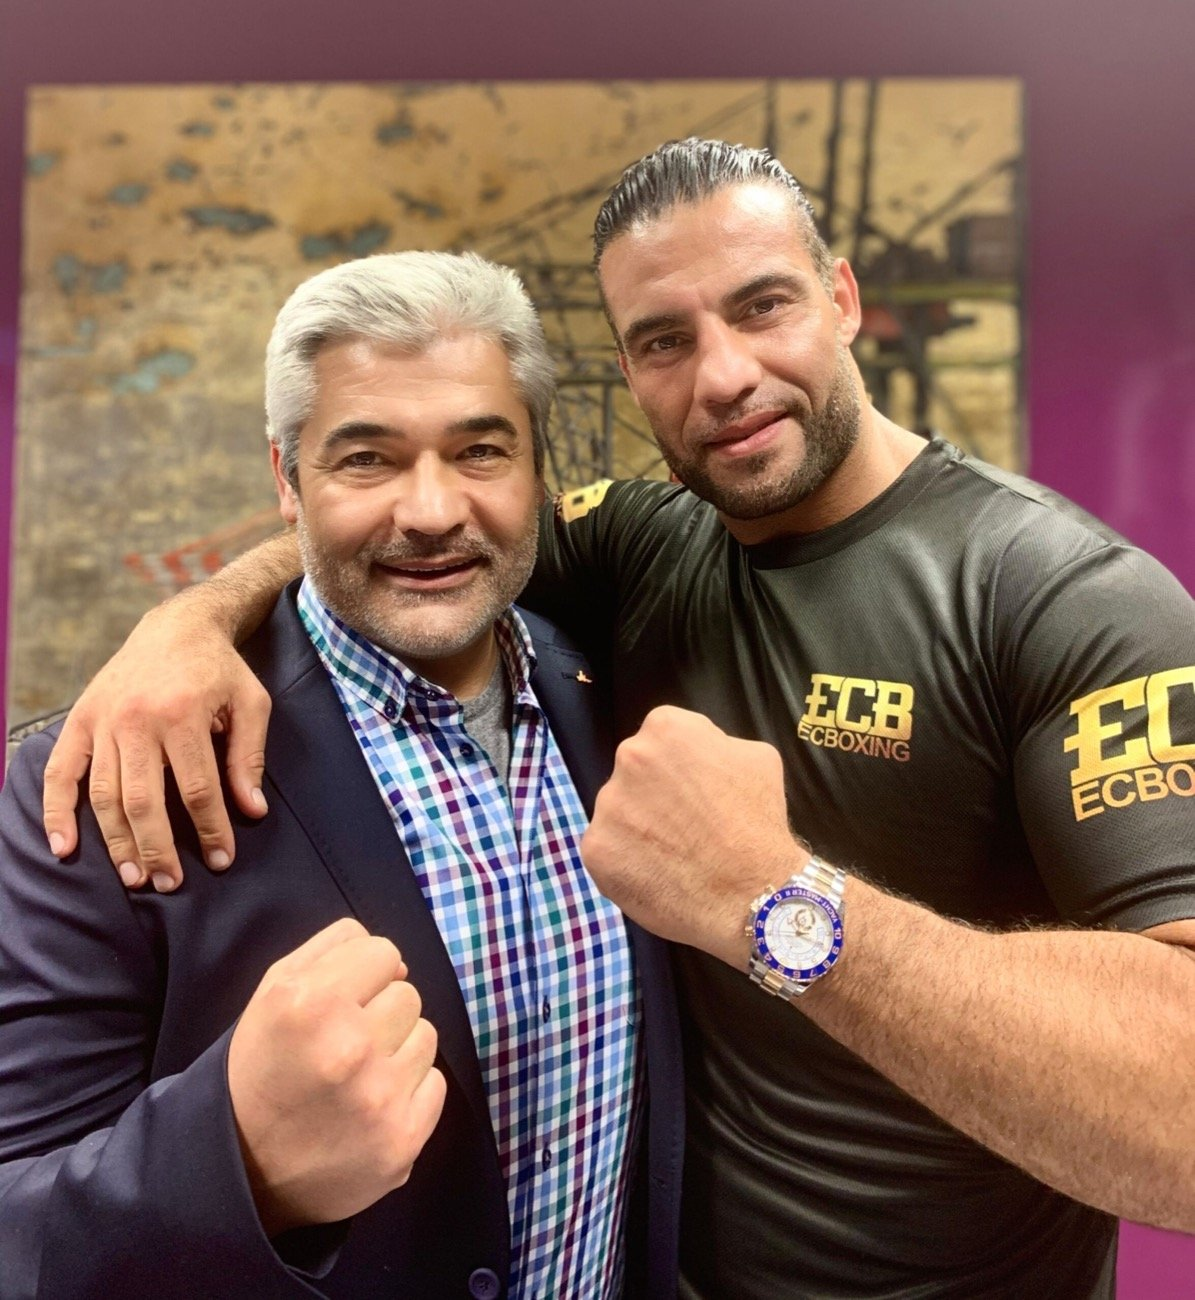 Manuel Charr - Boxing promoter Erol Ceylan has signed WBA (Regular) heavyweight champion Mahmoud Charr to a long-term contract in Hamburg. Charr has held the WBA (Regular) heavyweight title since 2017 and has won 31 of his 35 fights as a professional.